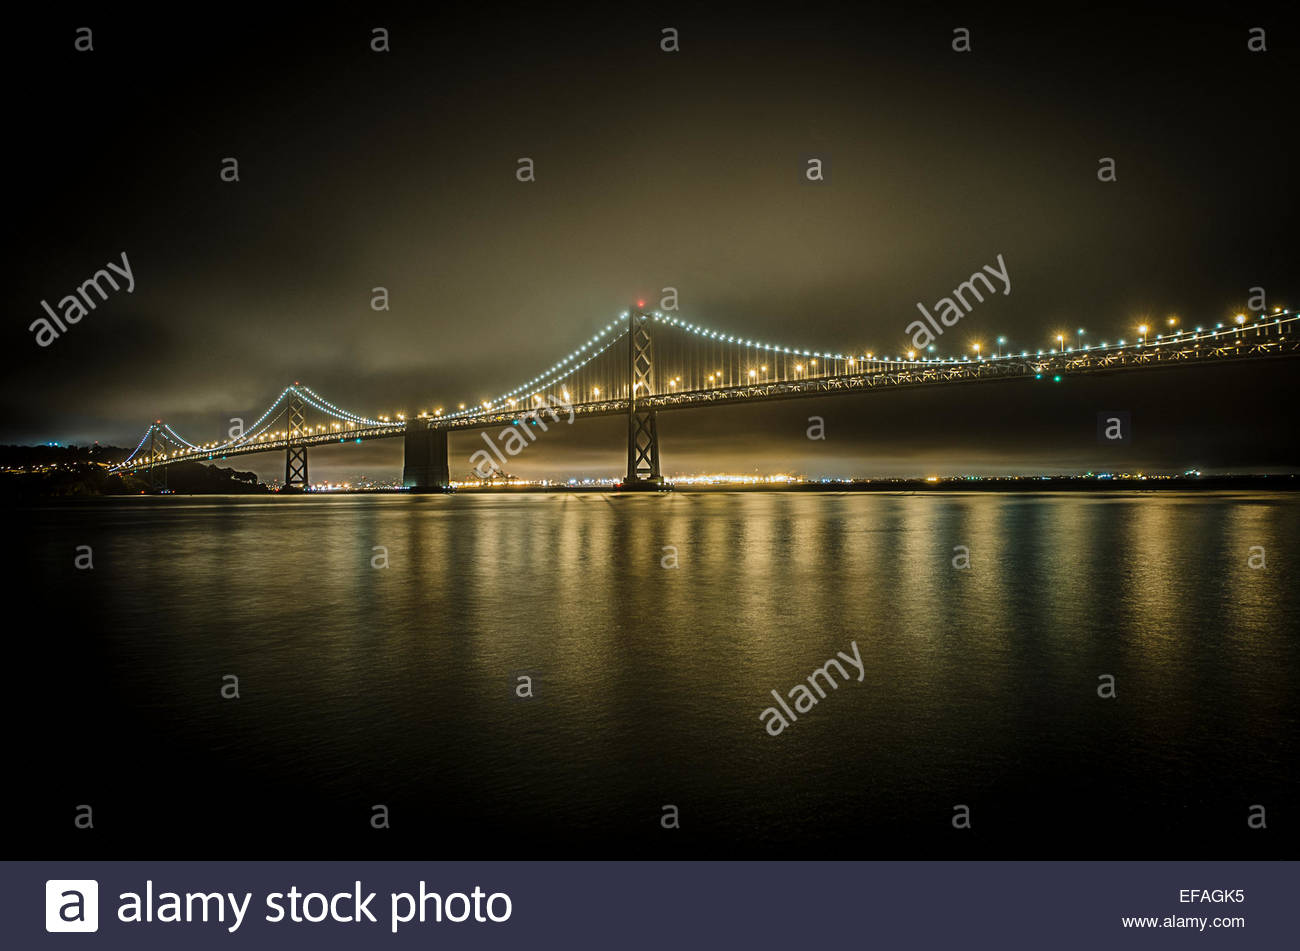 View of San Francisco Bay Bridge at night - Stock Image